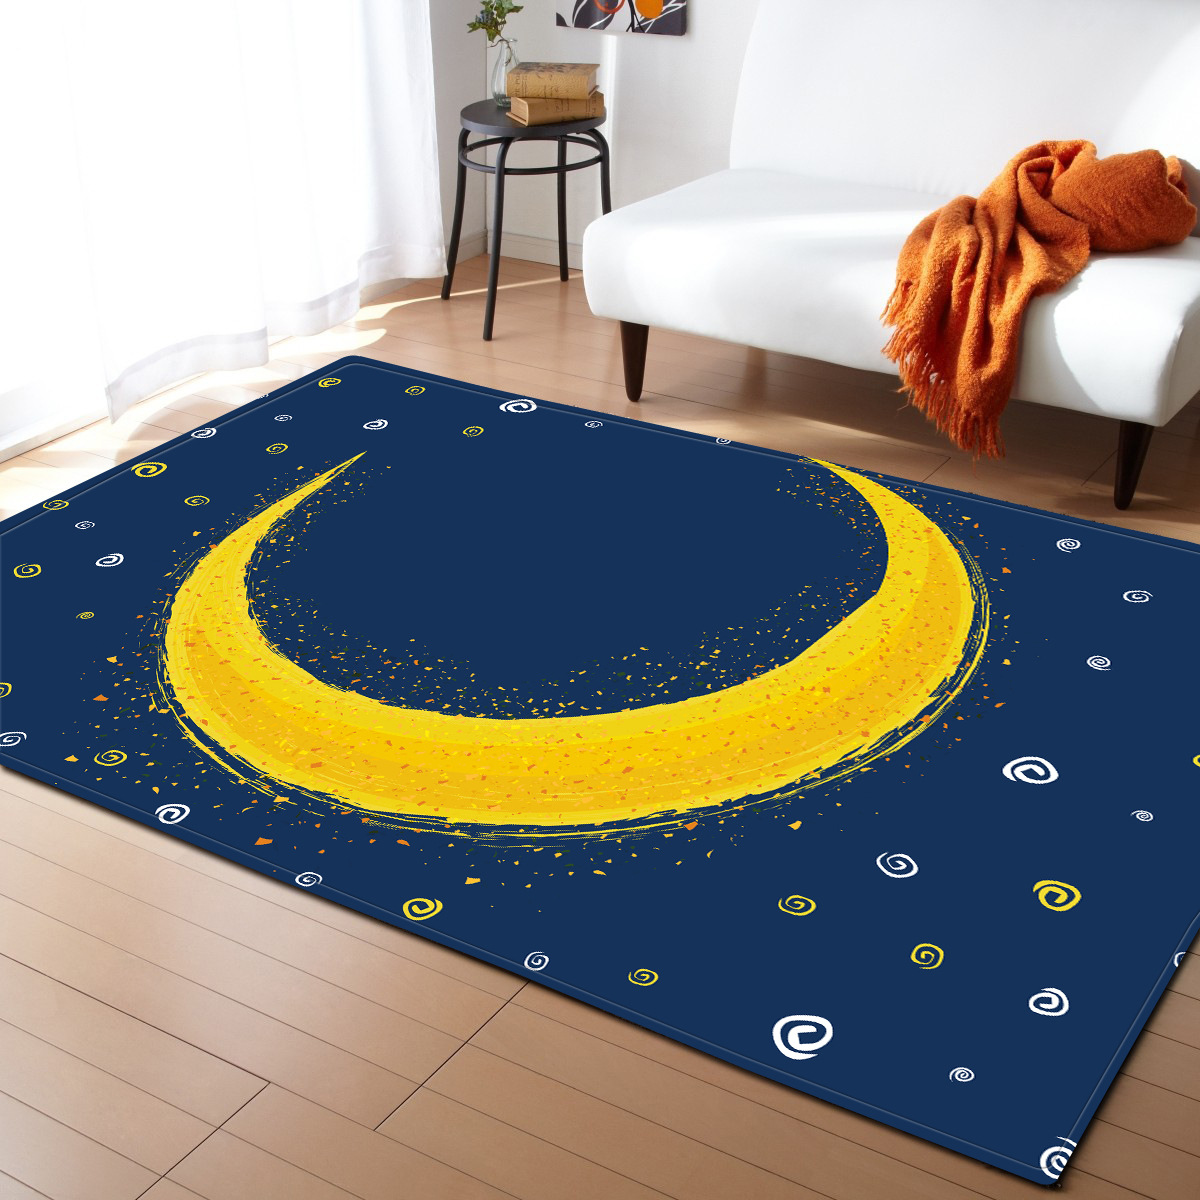 Us 37 28 33 Off Modern Creative Moon Star Carpet Baby Livingroom Bedroom Blue Area Rugs Kids Floor Play Mat Large Size Tapete Soft Pad In Carpet